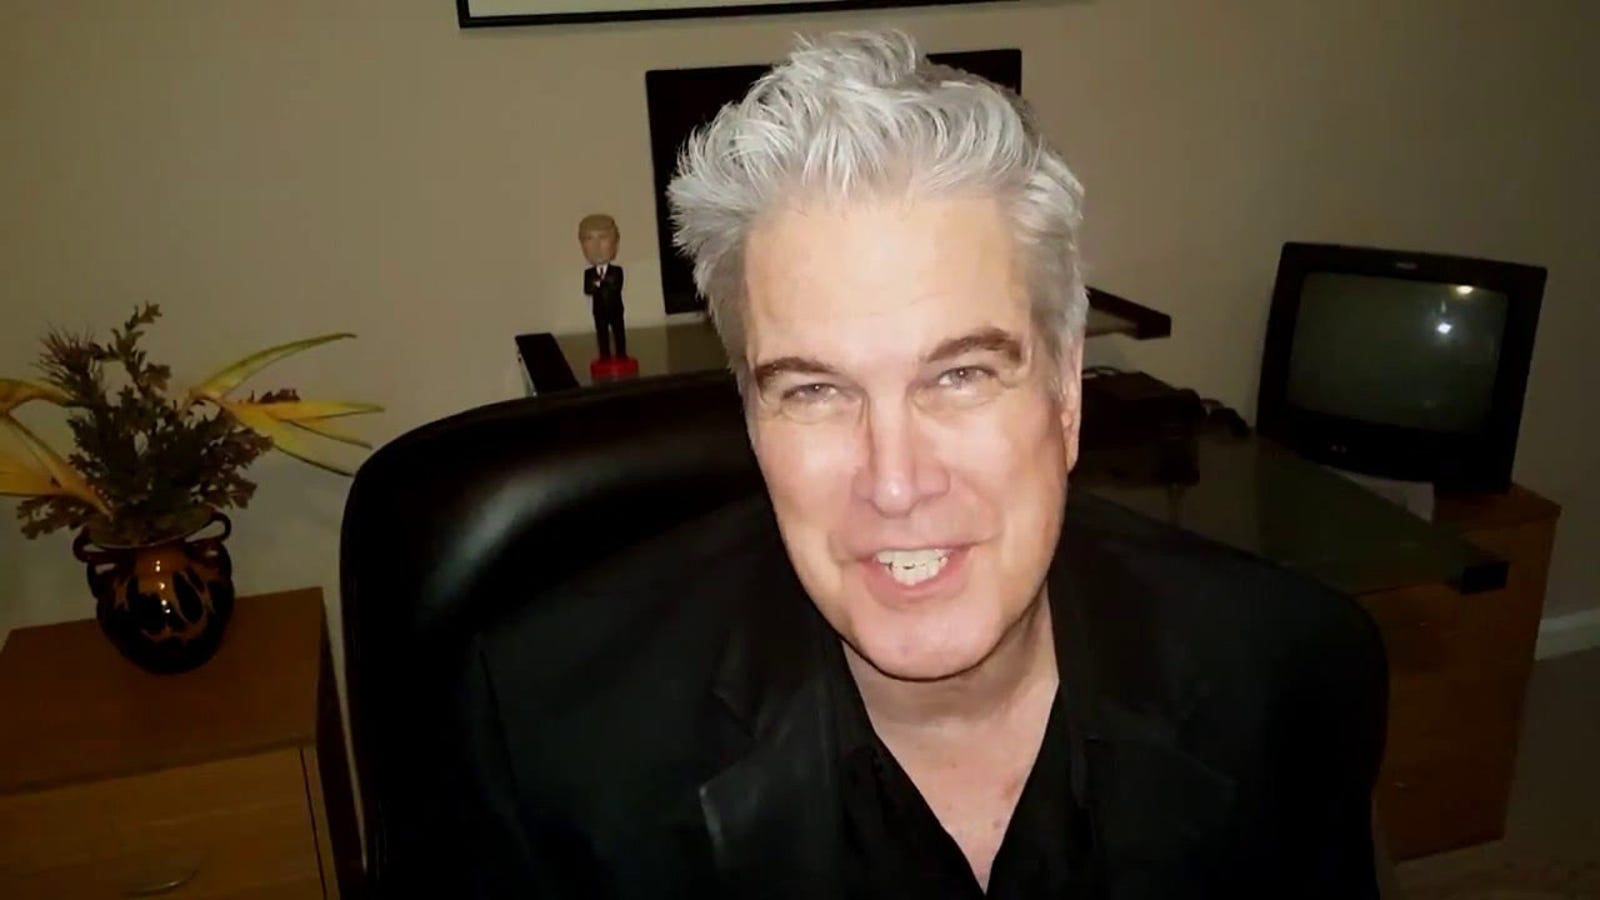 Trump Pundit Bill Mitchell Burns His Life Down With Pepe Tweet